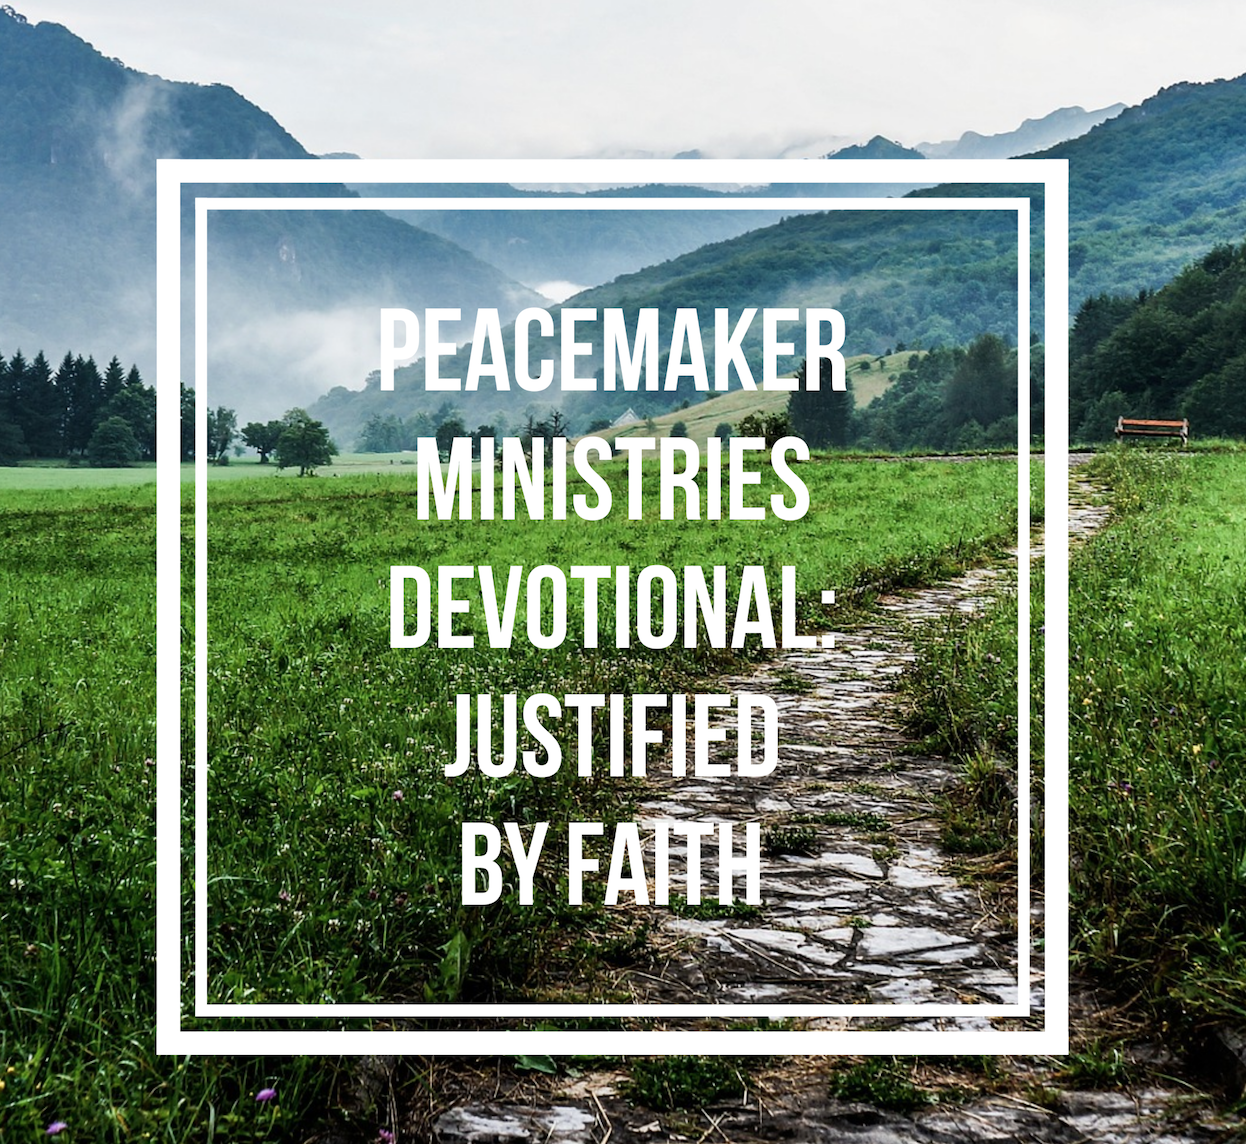 Peacemaker Ministries Devotional: Justified by Faith